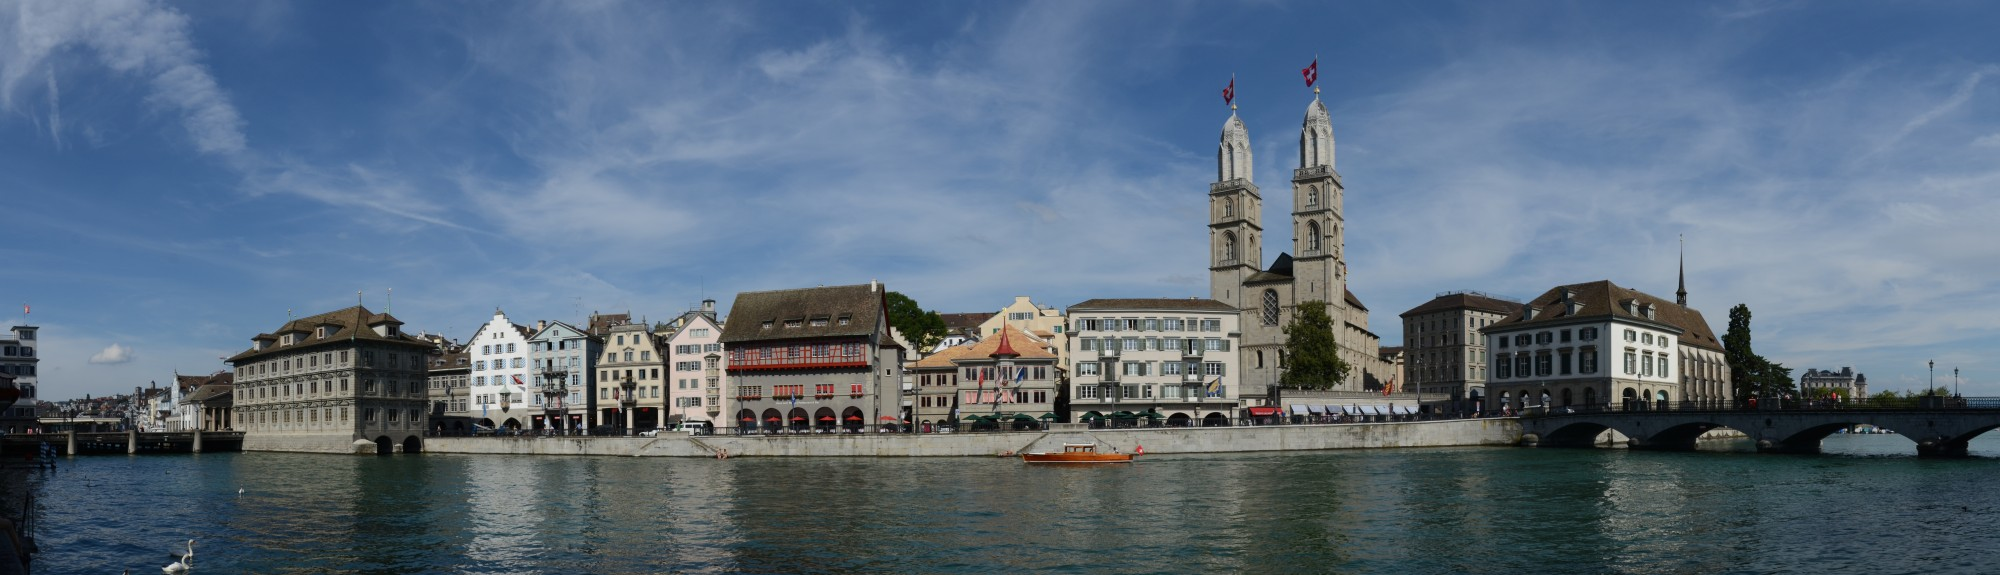 Zürich Grossmünster panorama 2012